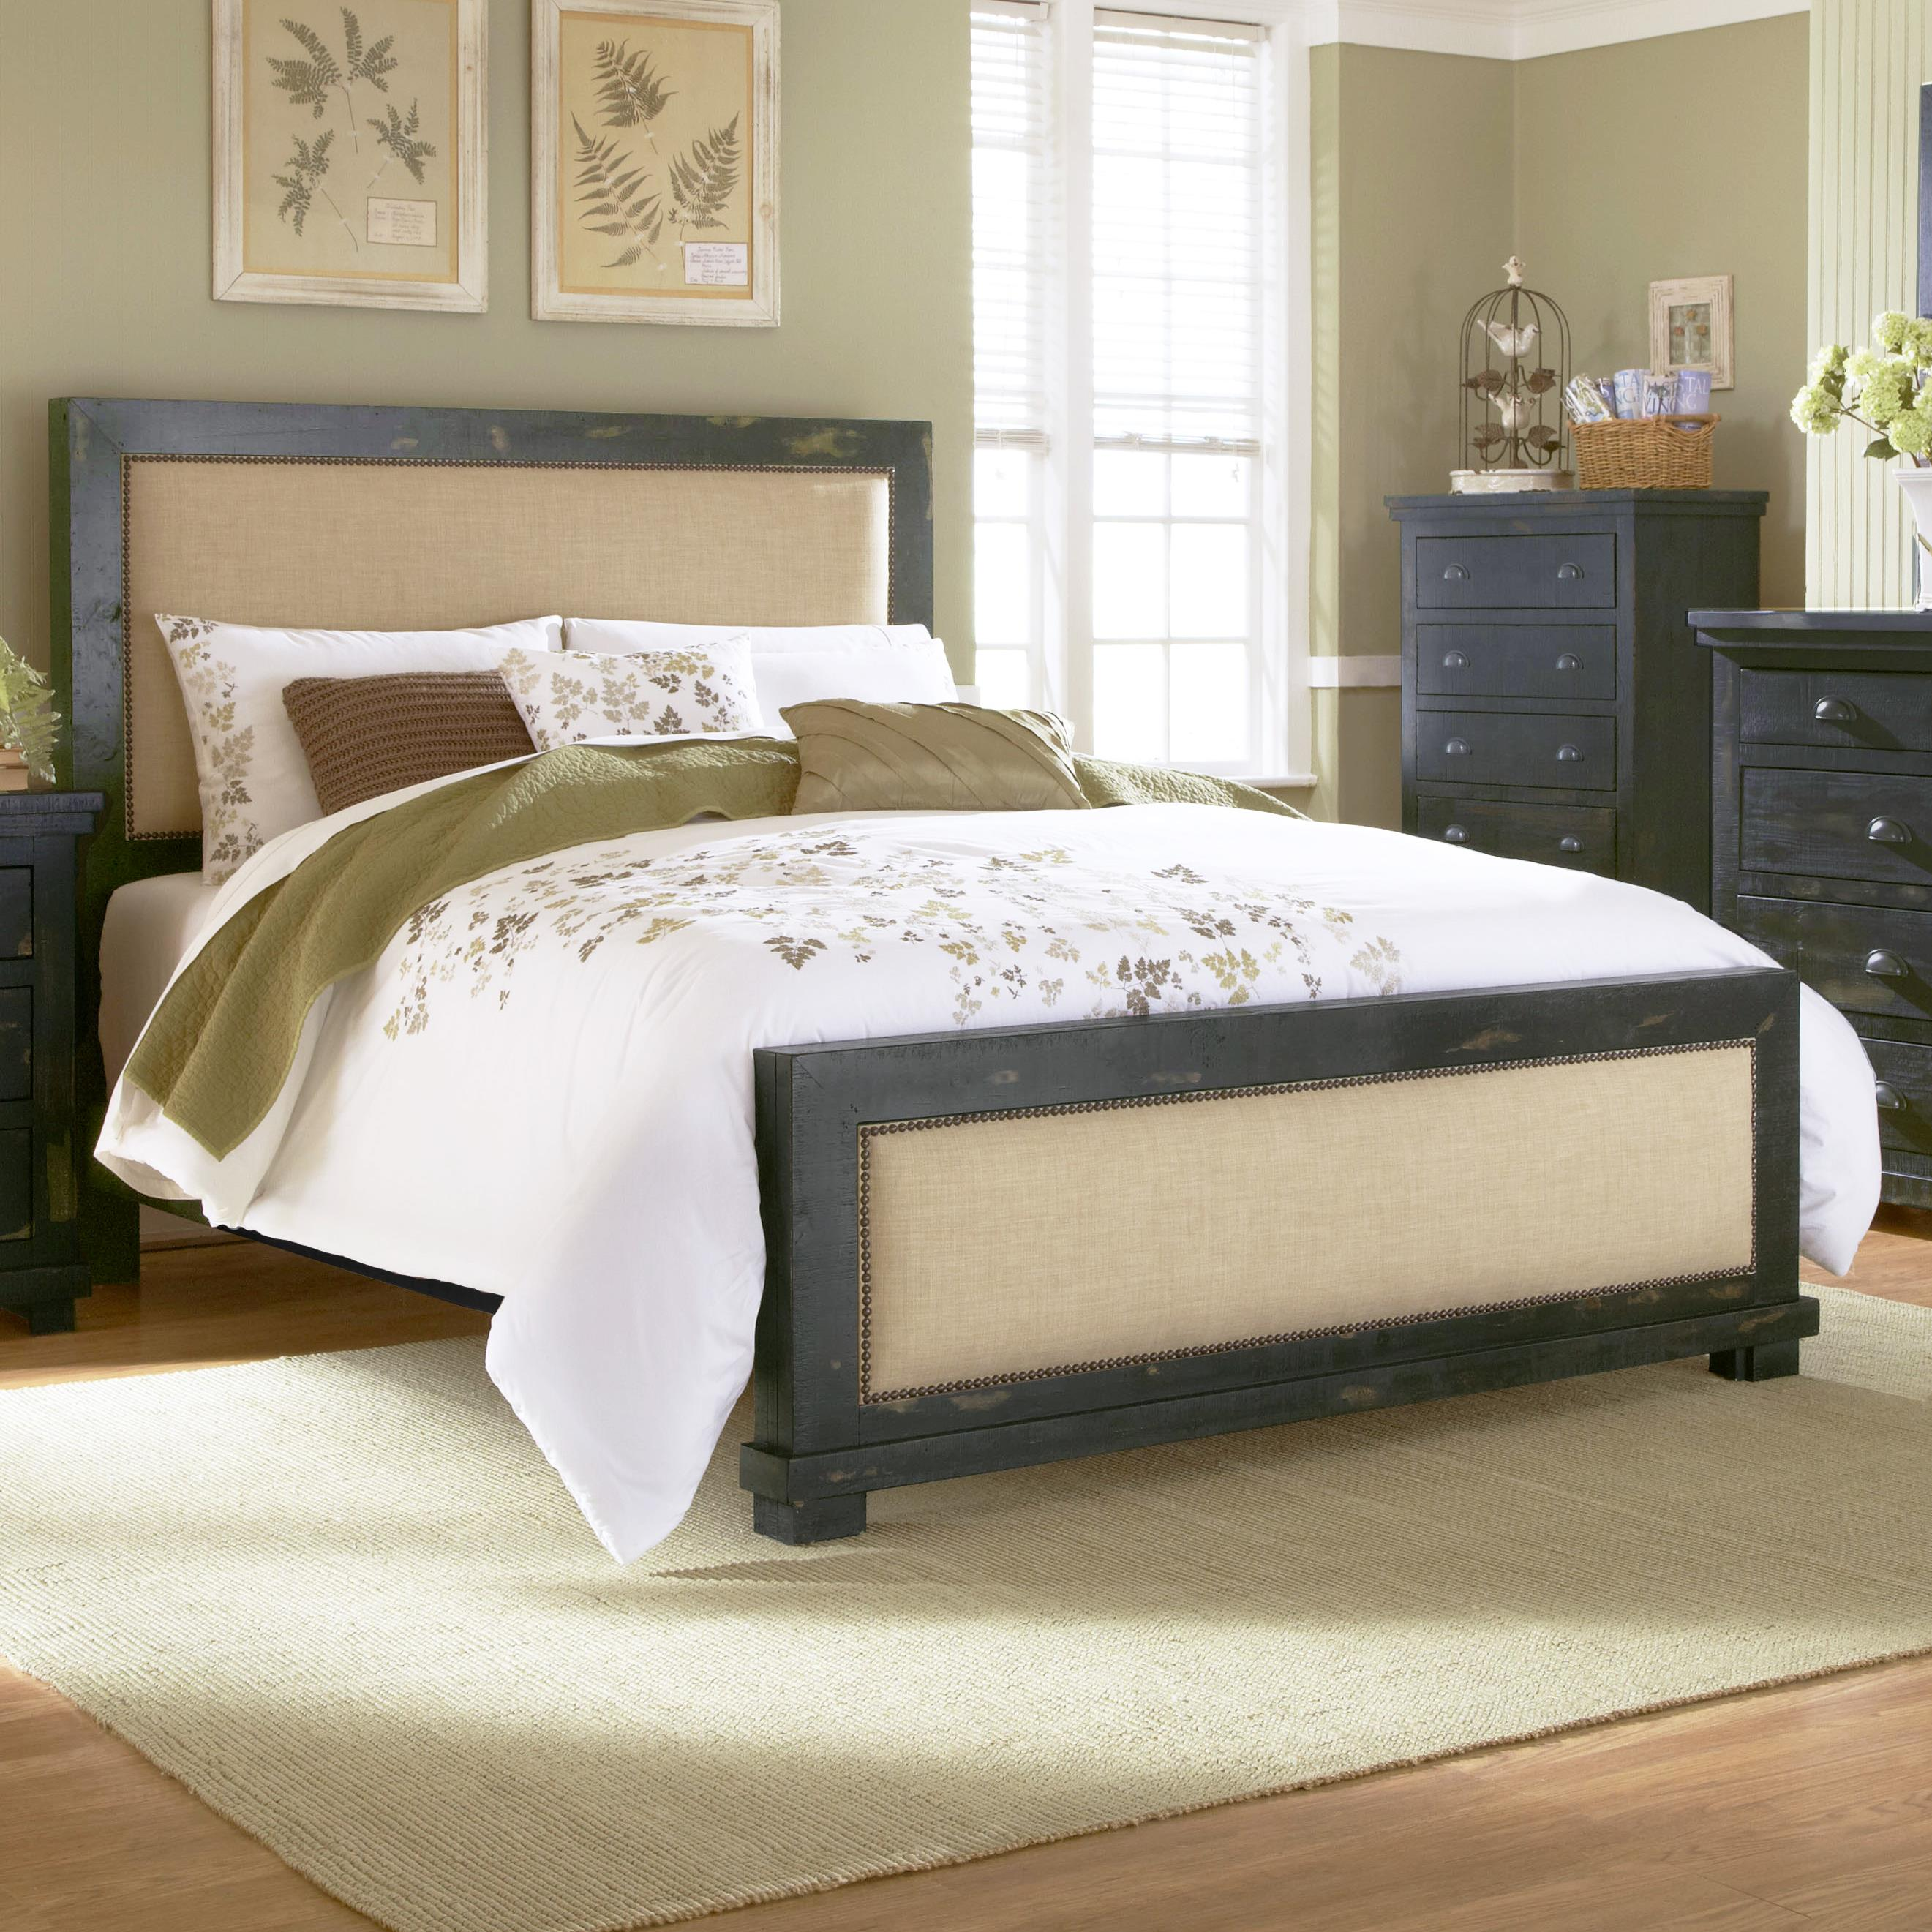 Progressive Furniture Willow King Upholstered Bed with Distressed